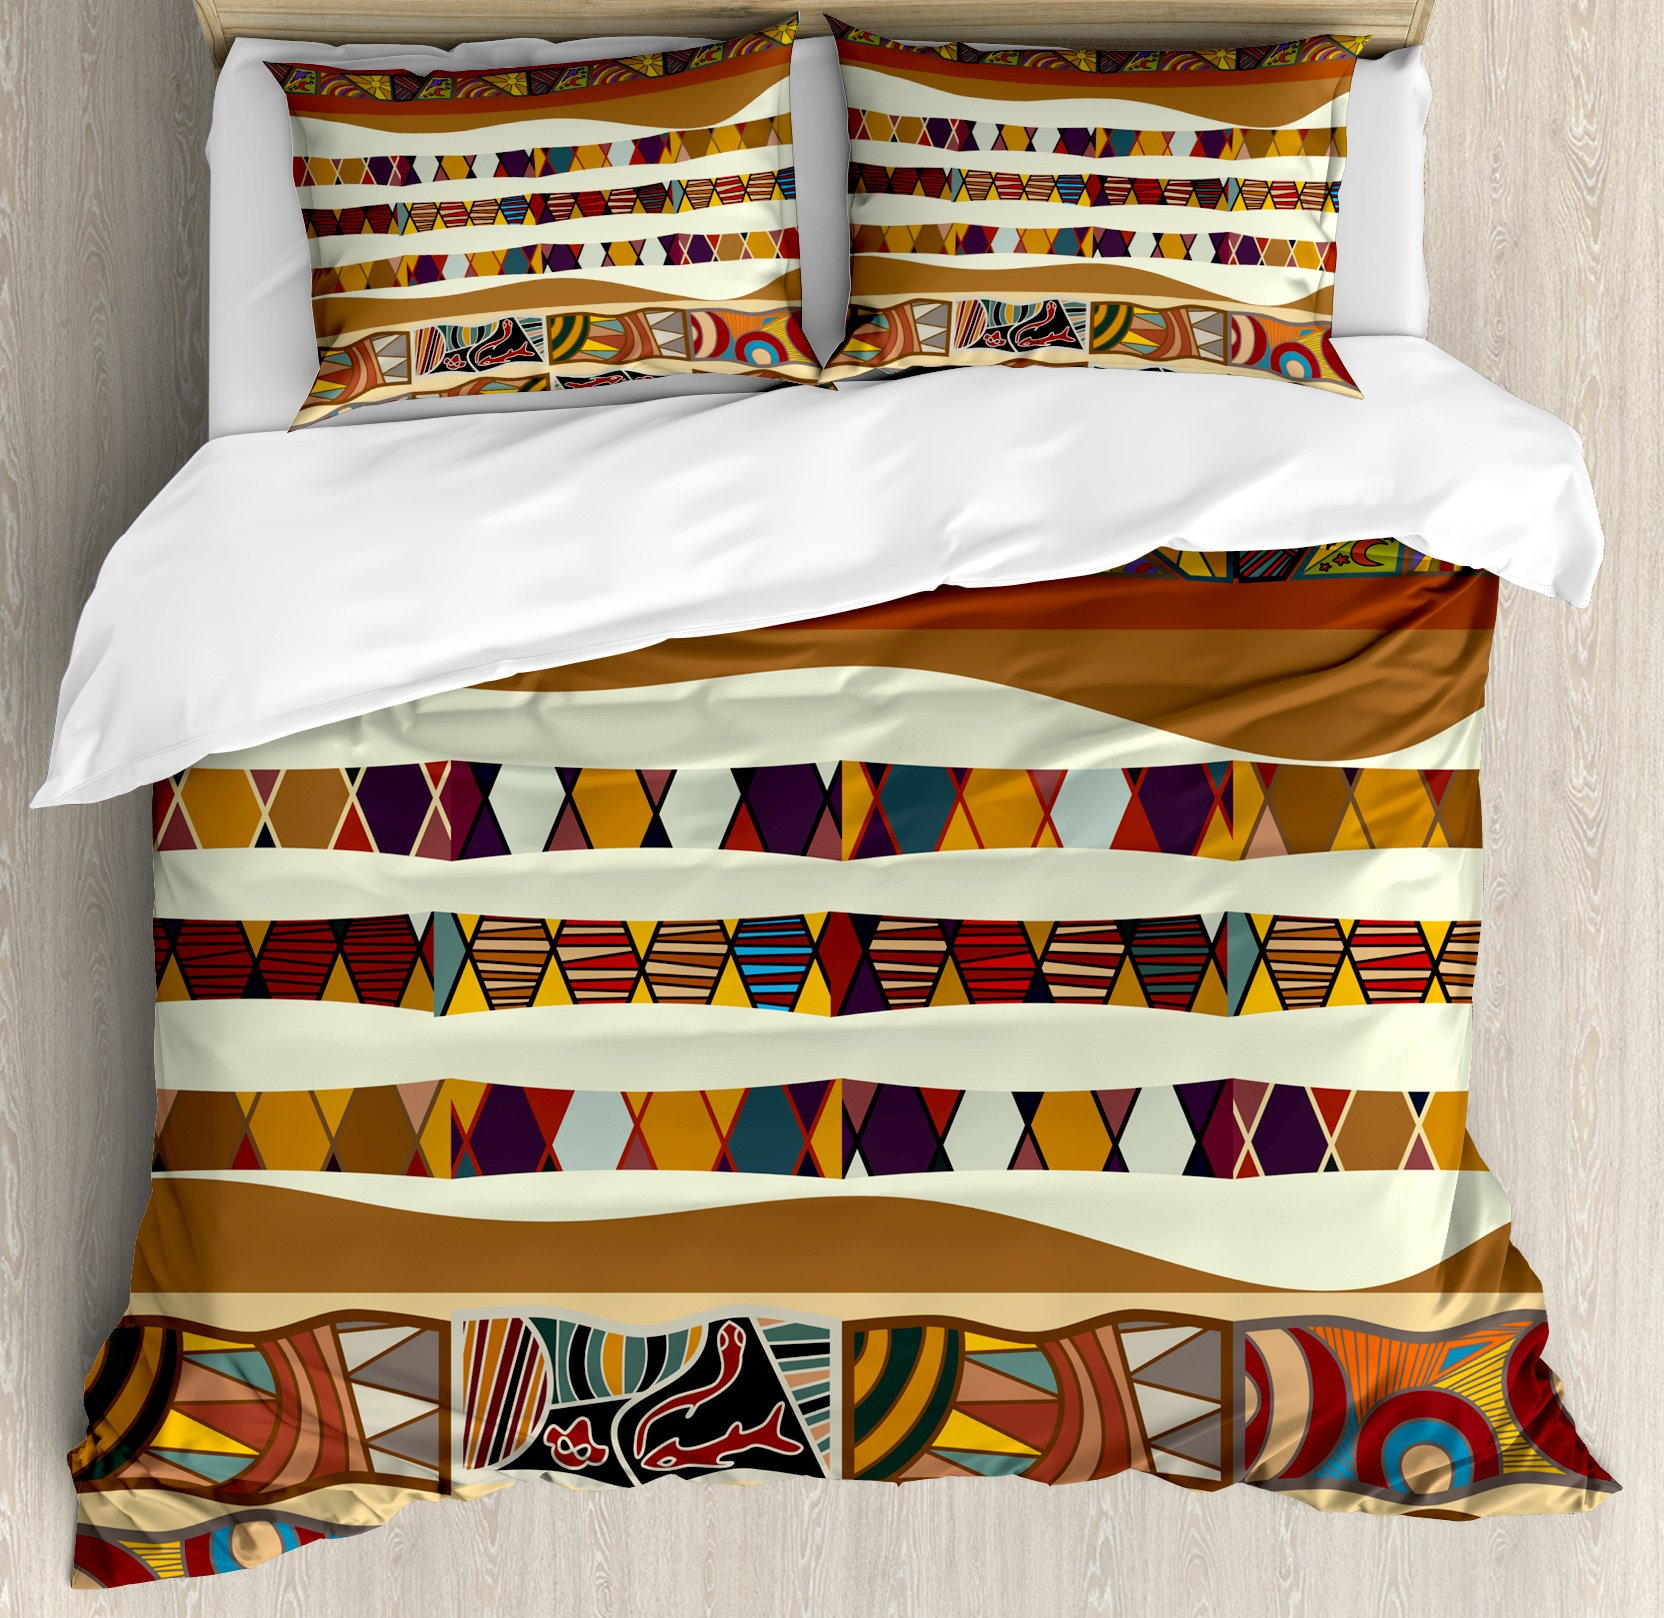 Ambesonne Tribal Duvet Cover Set King Size, Traditional African Folk with Cultural Featured Trippy Icons Boho Abstract Design, Decorative 3 Piece Bedding Set with 2 Pillow Shams, Multicolor